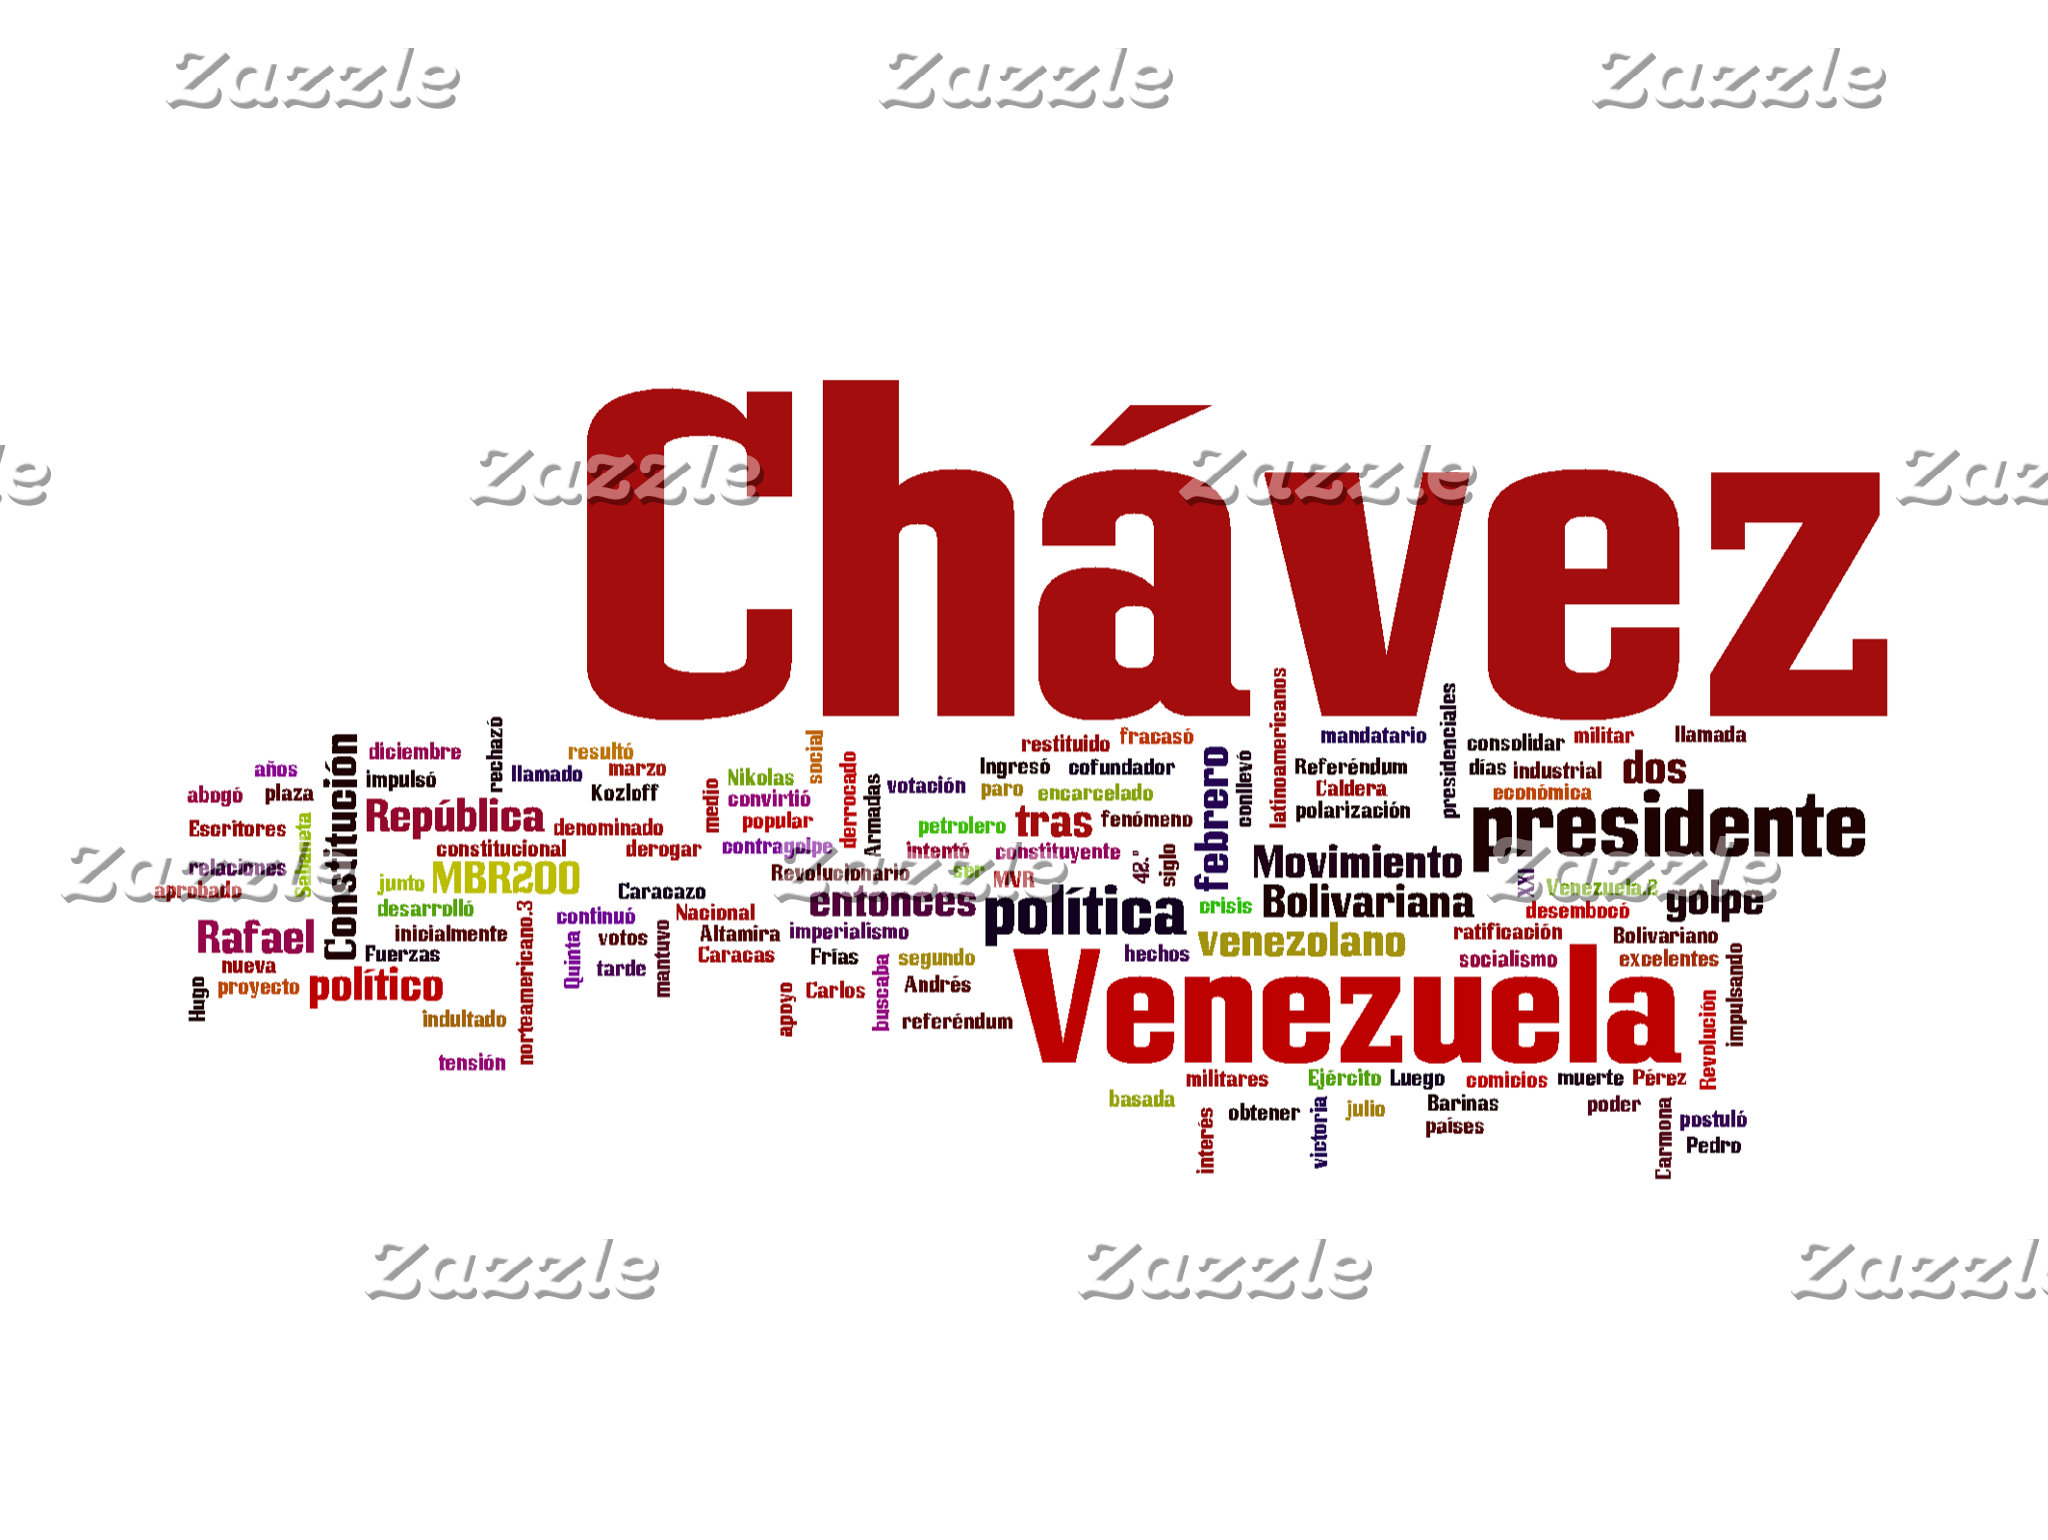 Hugo Chavez - Many Colorful Words style